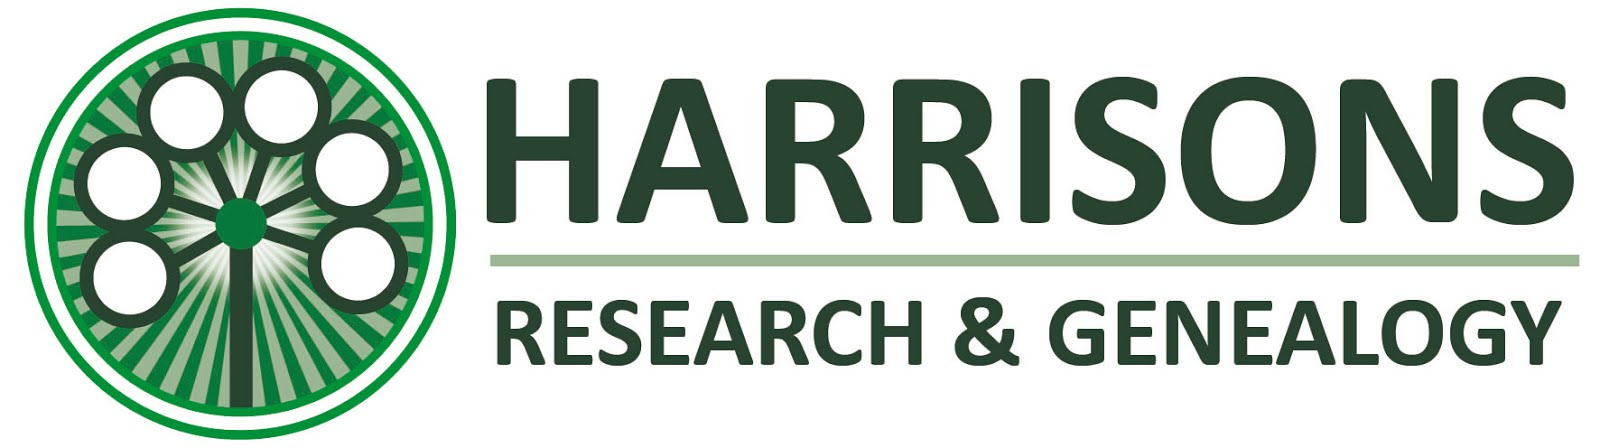 Harrison Research &amp; Genealogy